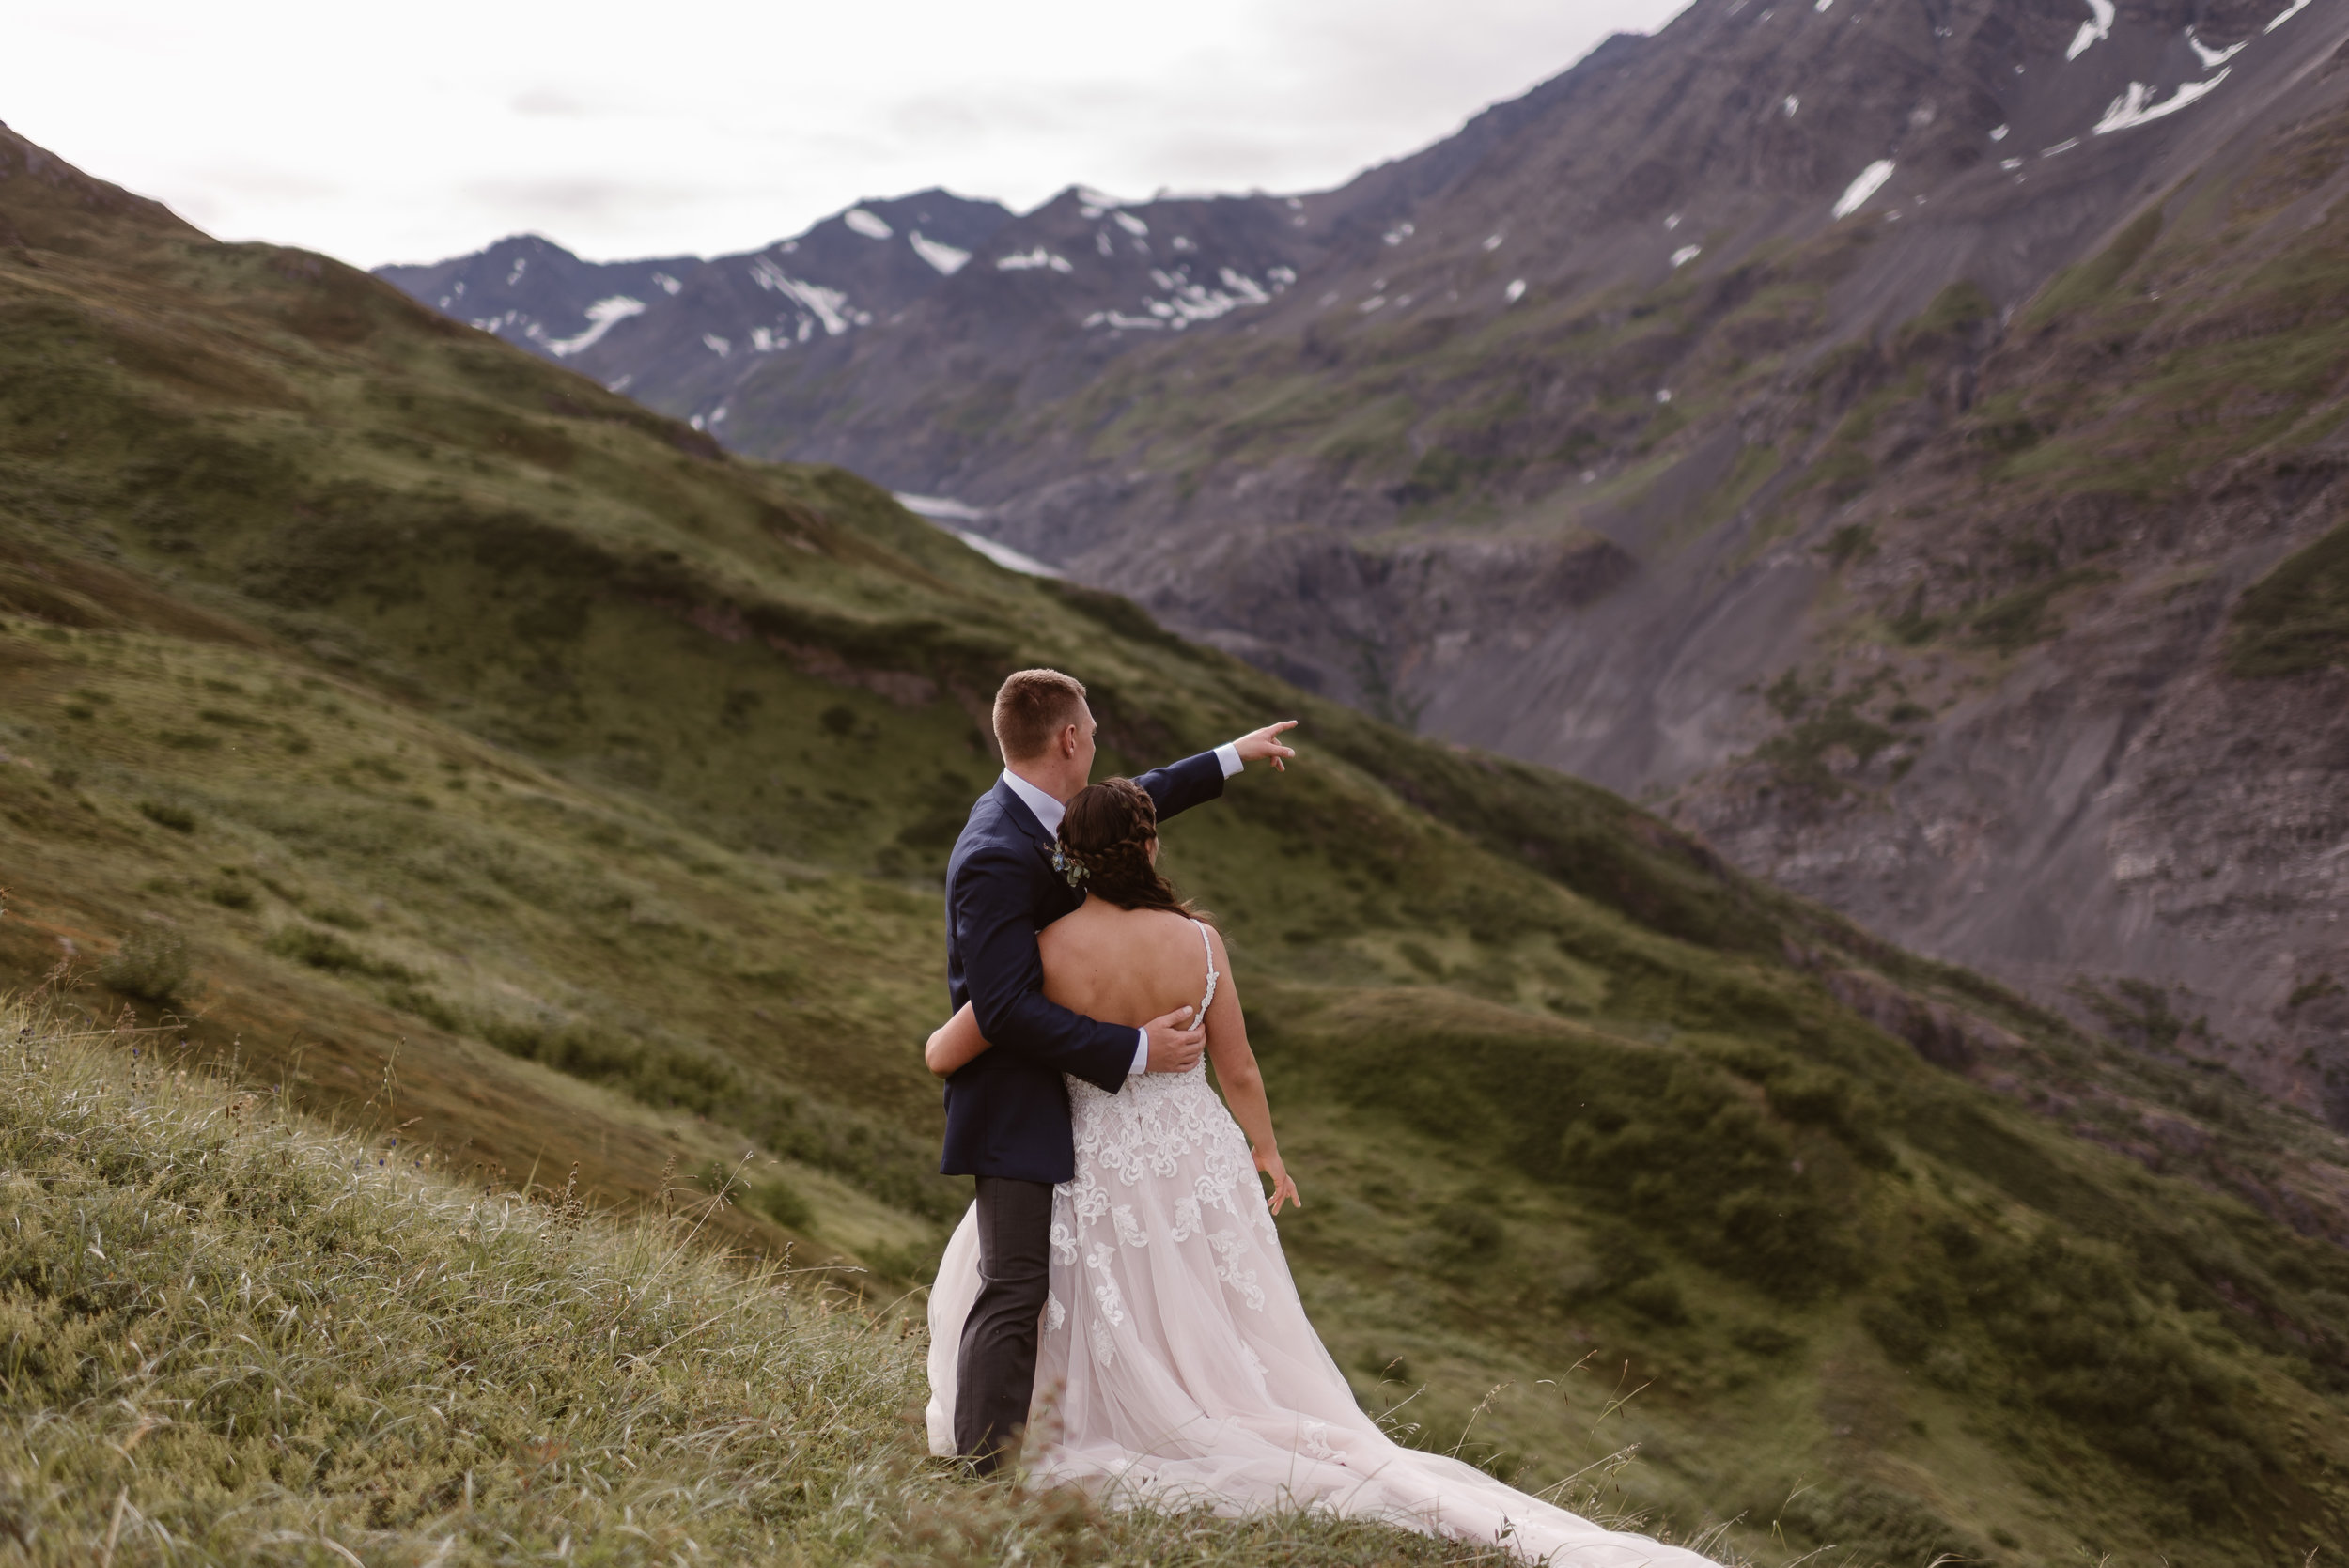 Jordyn and Connor embrace with their backs to the camera in these elopement pictures captured by Adventure Instead, Alaska wedding photographers. Connor points off into the distance beyond the rocky, granite peaks in front of them as they stand on a green, lush mountainside.